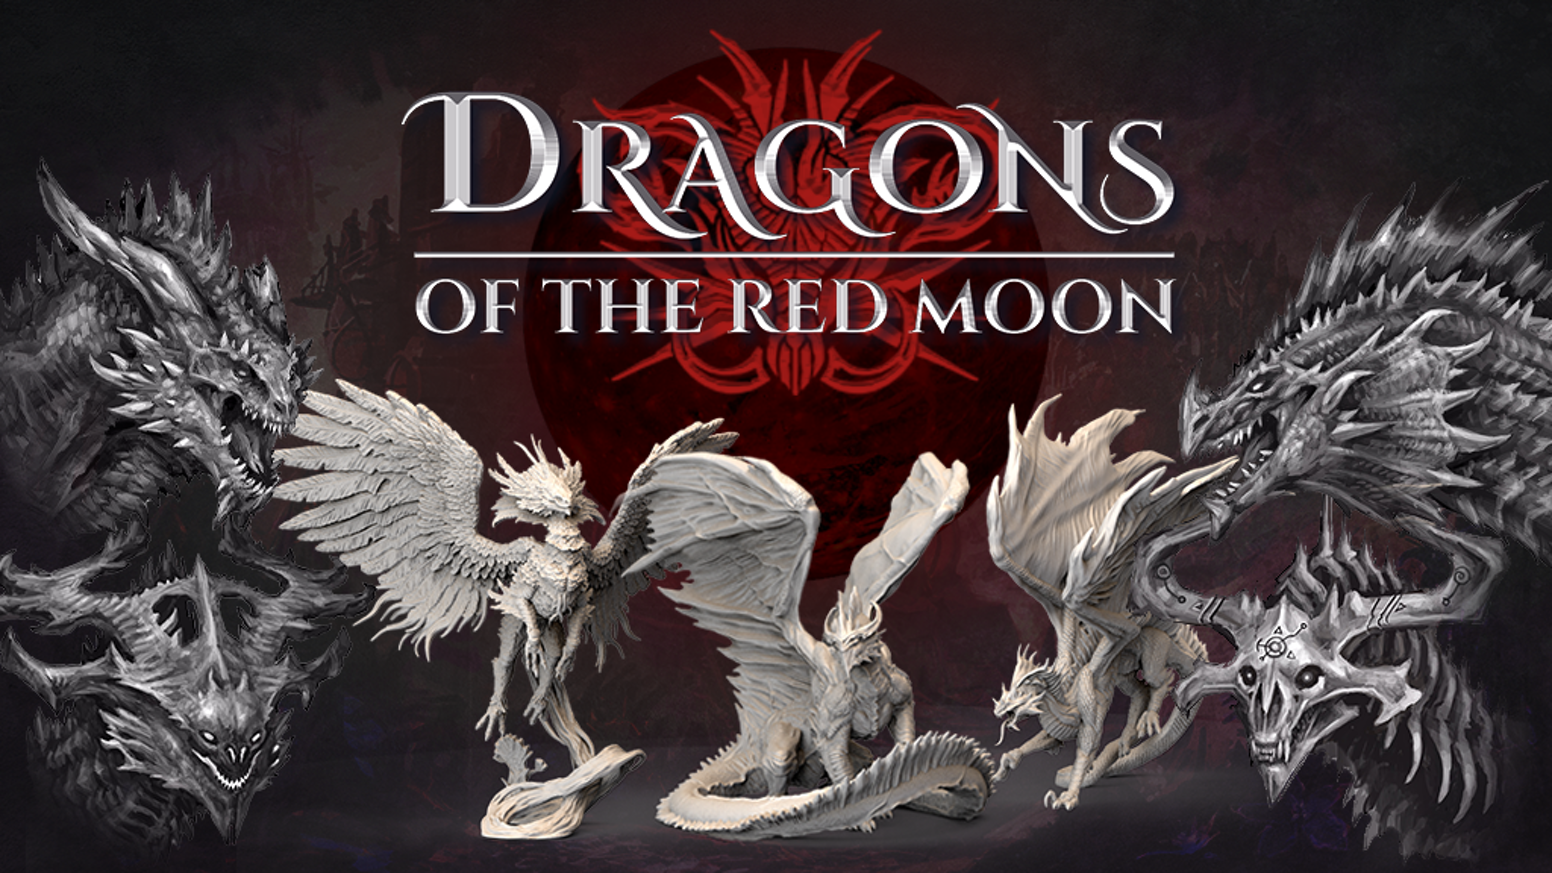 200mm gargantuan dragons from the Red Moon unlike anything you have ever seen. Resin miniatures compatible with 5e and the 9th age.